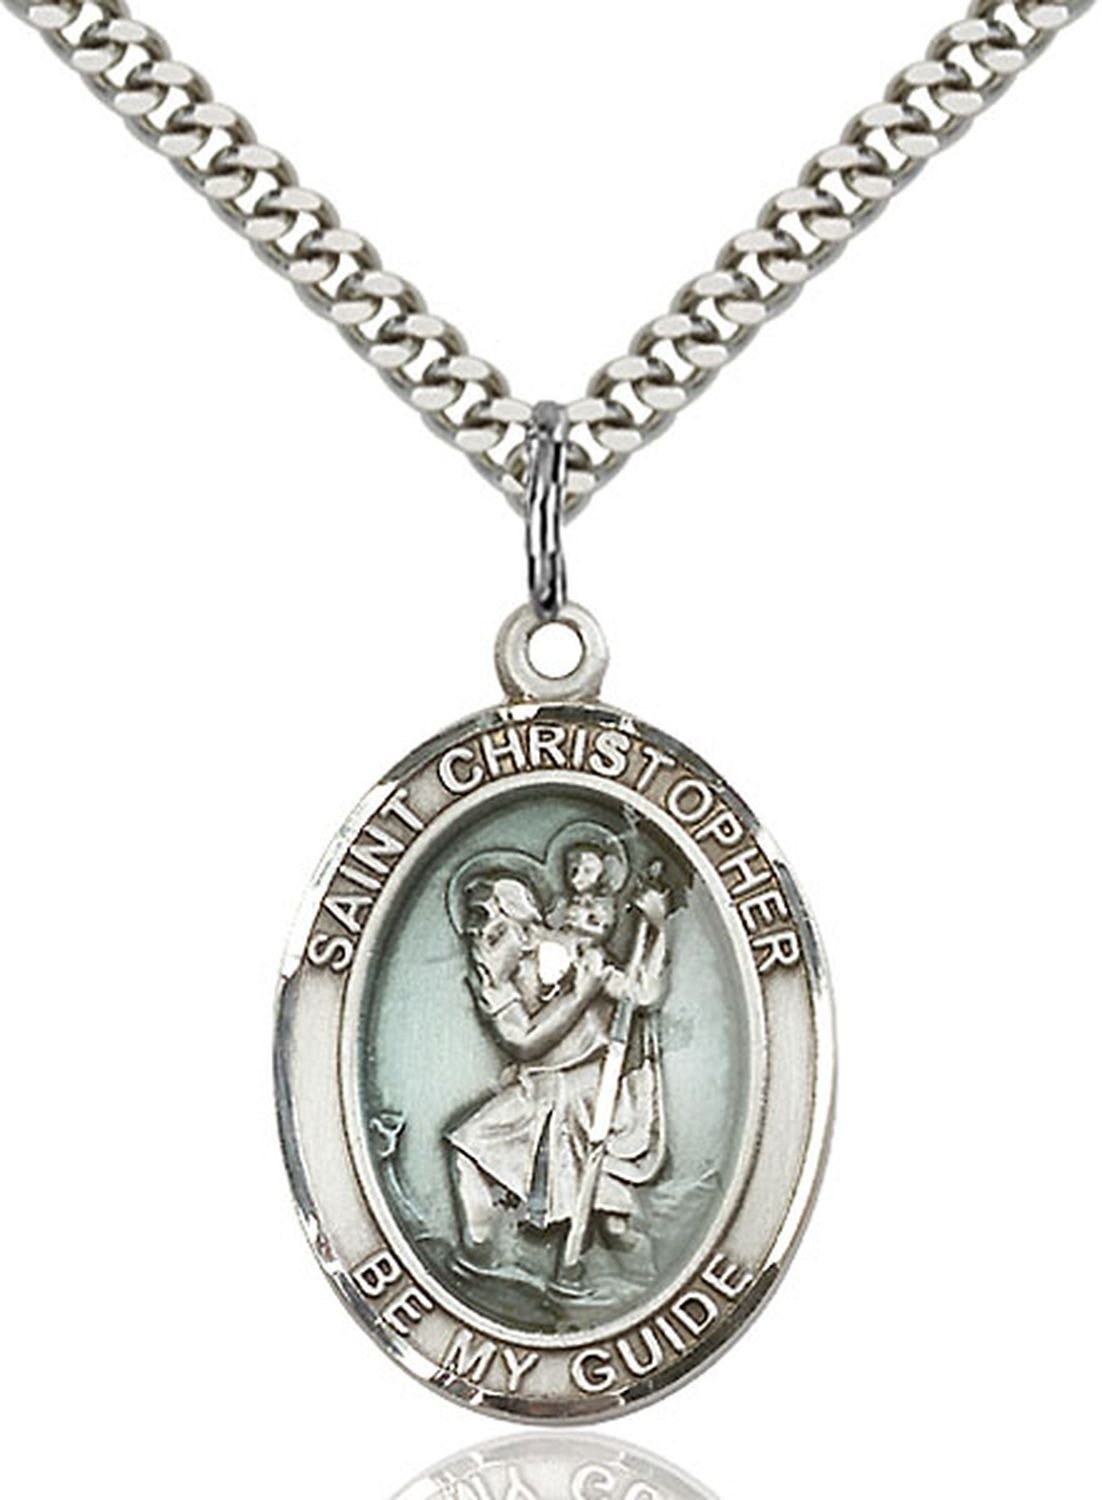 Pewter St. Christopher Pendant 1 x 3/4 Inches with Silver Plated Heavy Curb Chain by Enlightened Expressions